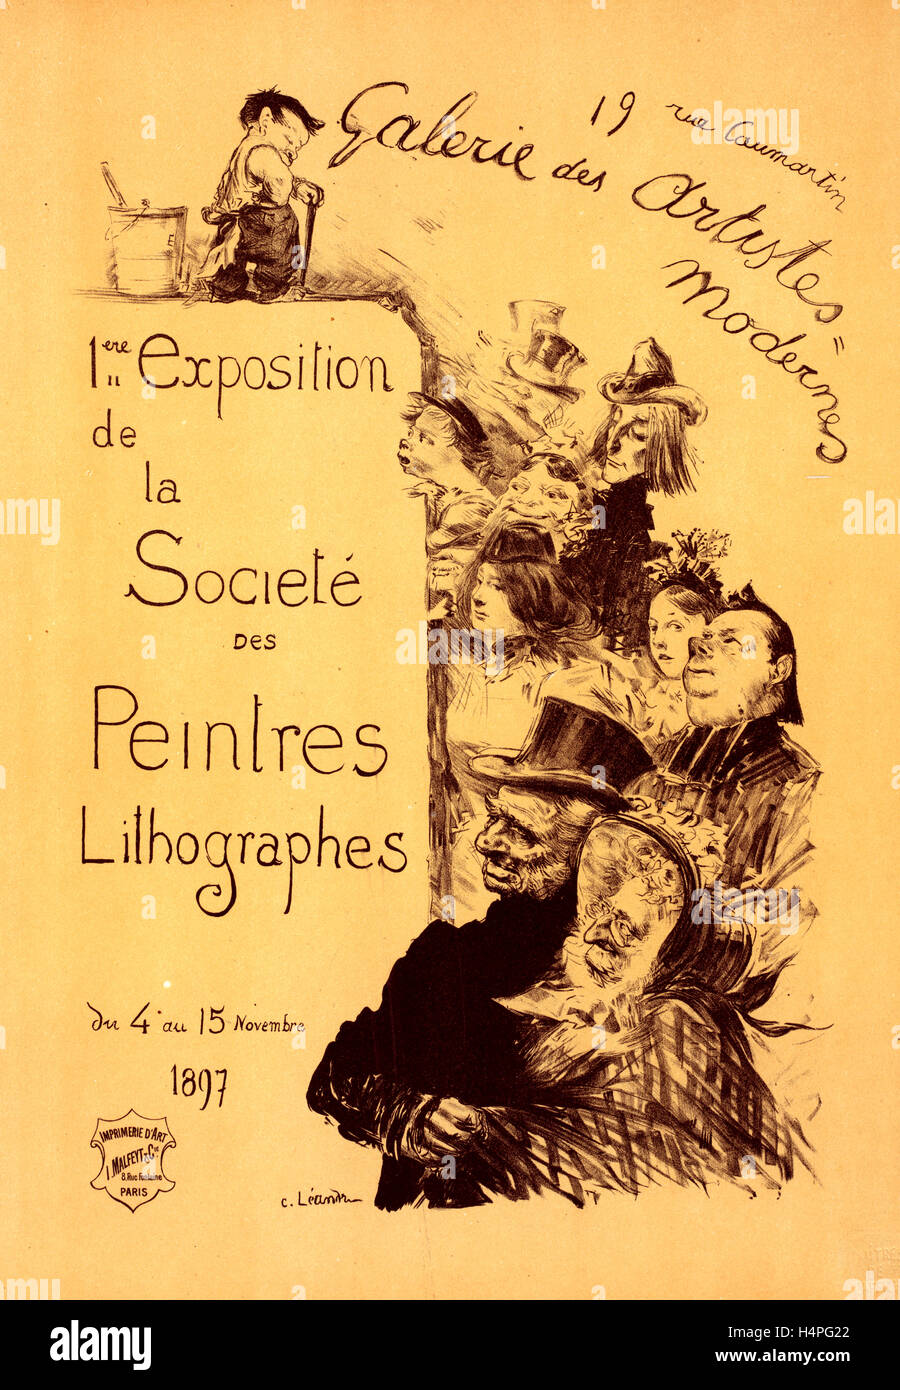 Poster for Galerie des Artistes modernes. The Society of Lithography Painters Exhibition, 1897, Charles Lucien Léandre - Stock Image